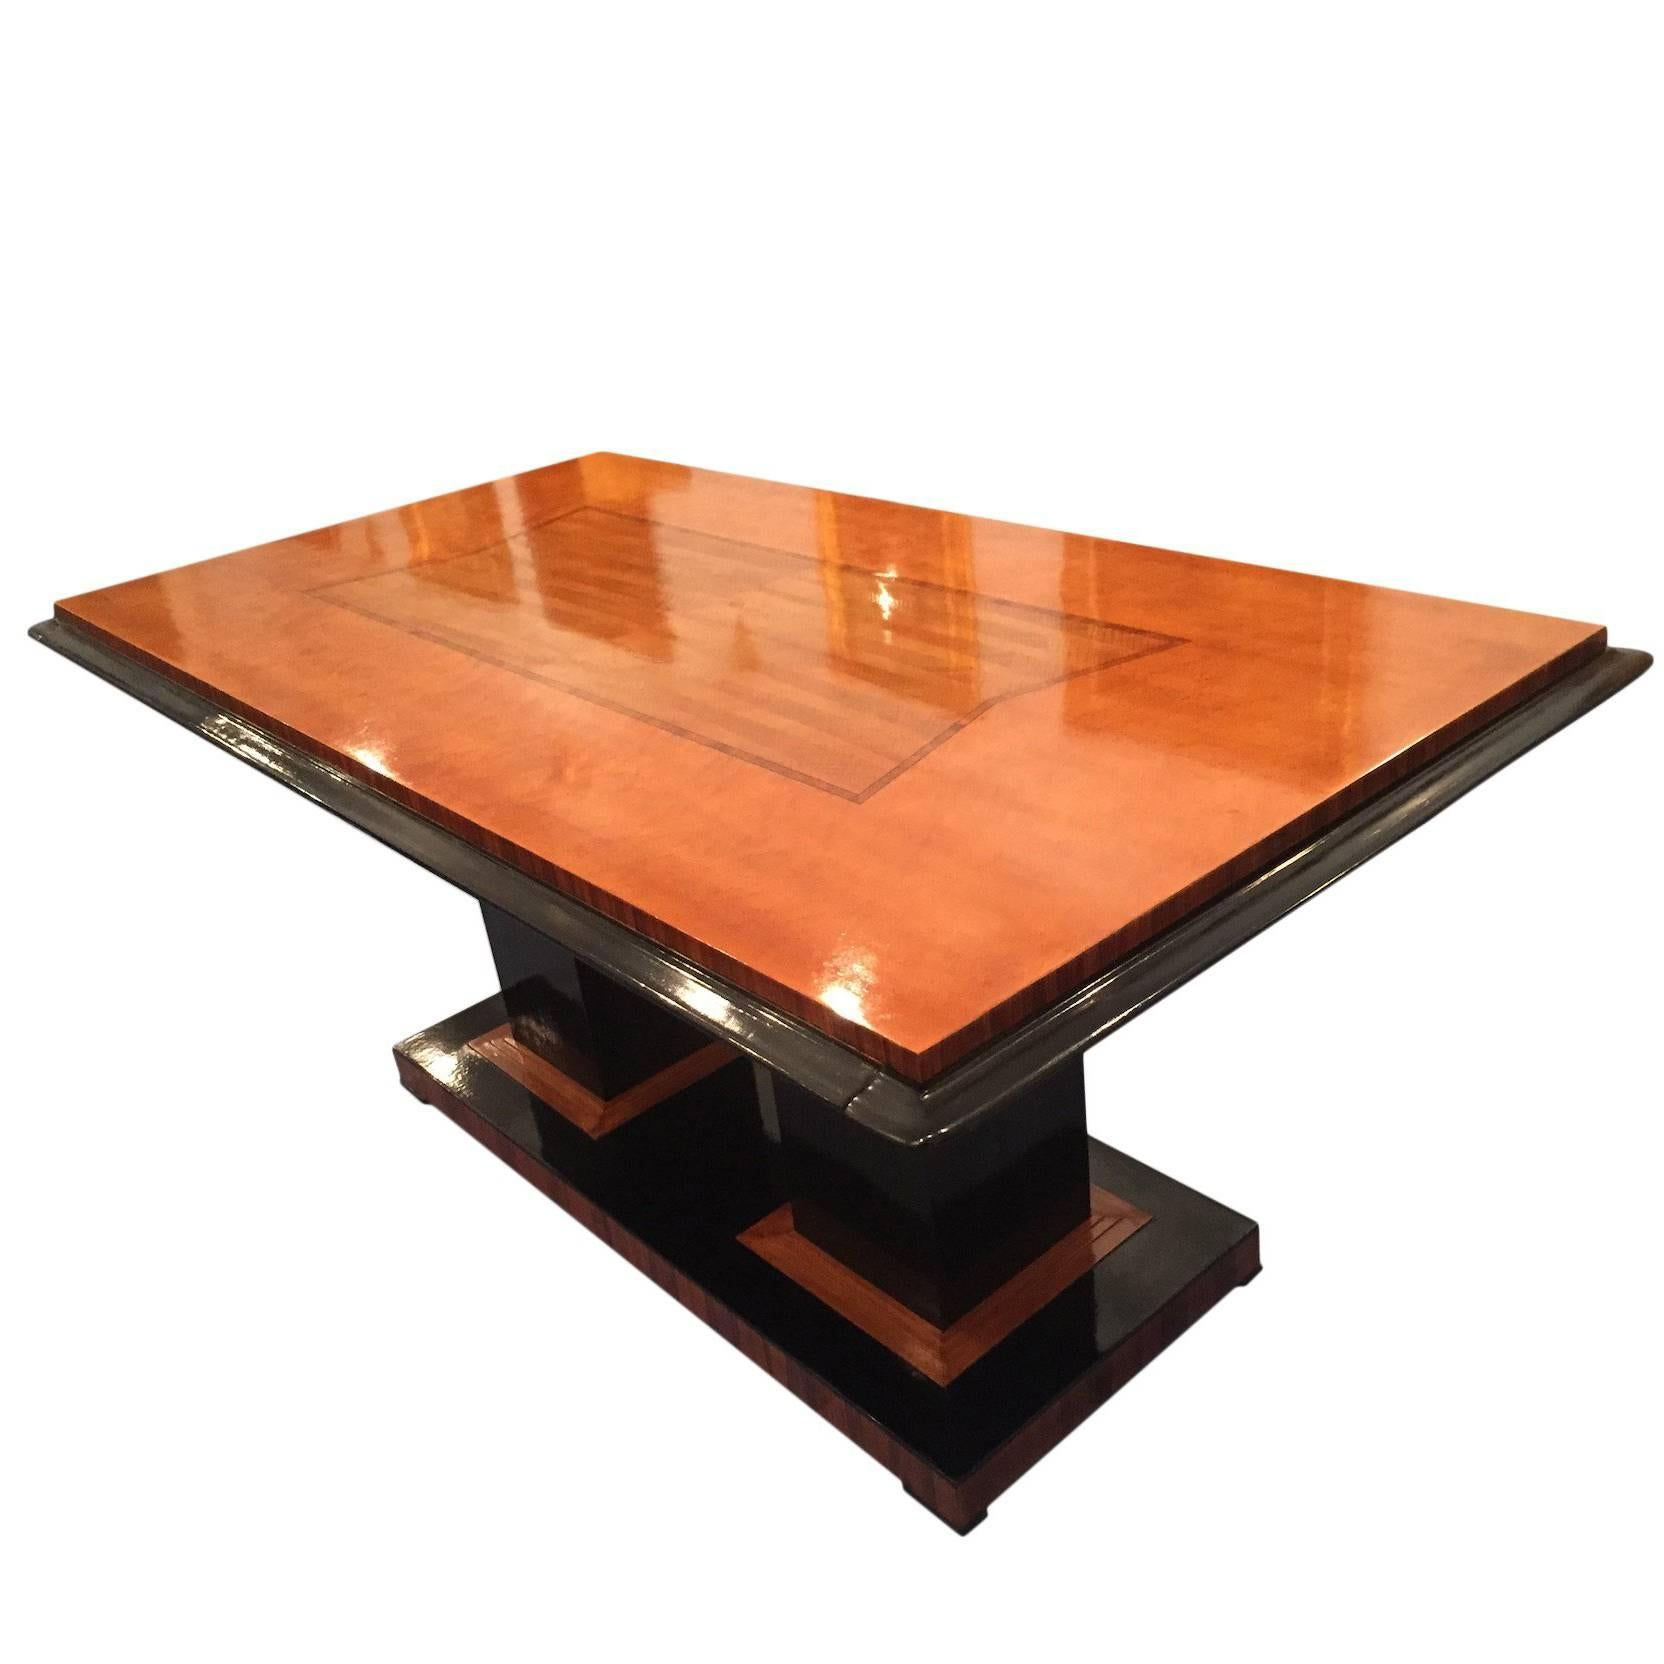 Italian Art Deco Dining Table in Maple with Decoration, 1940s